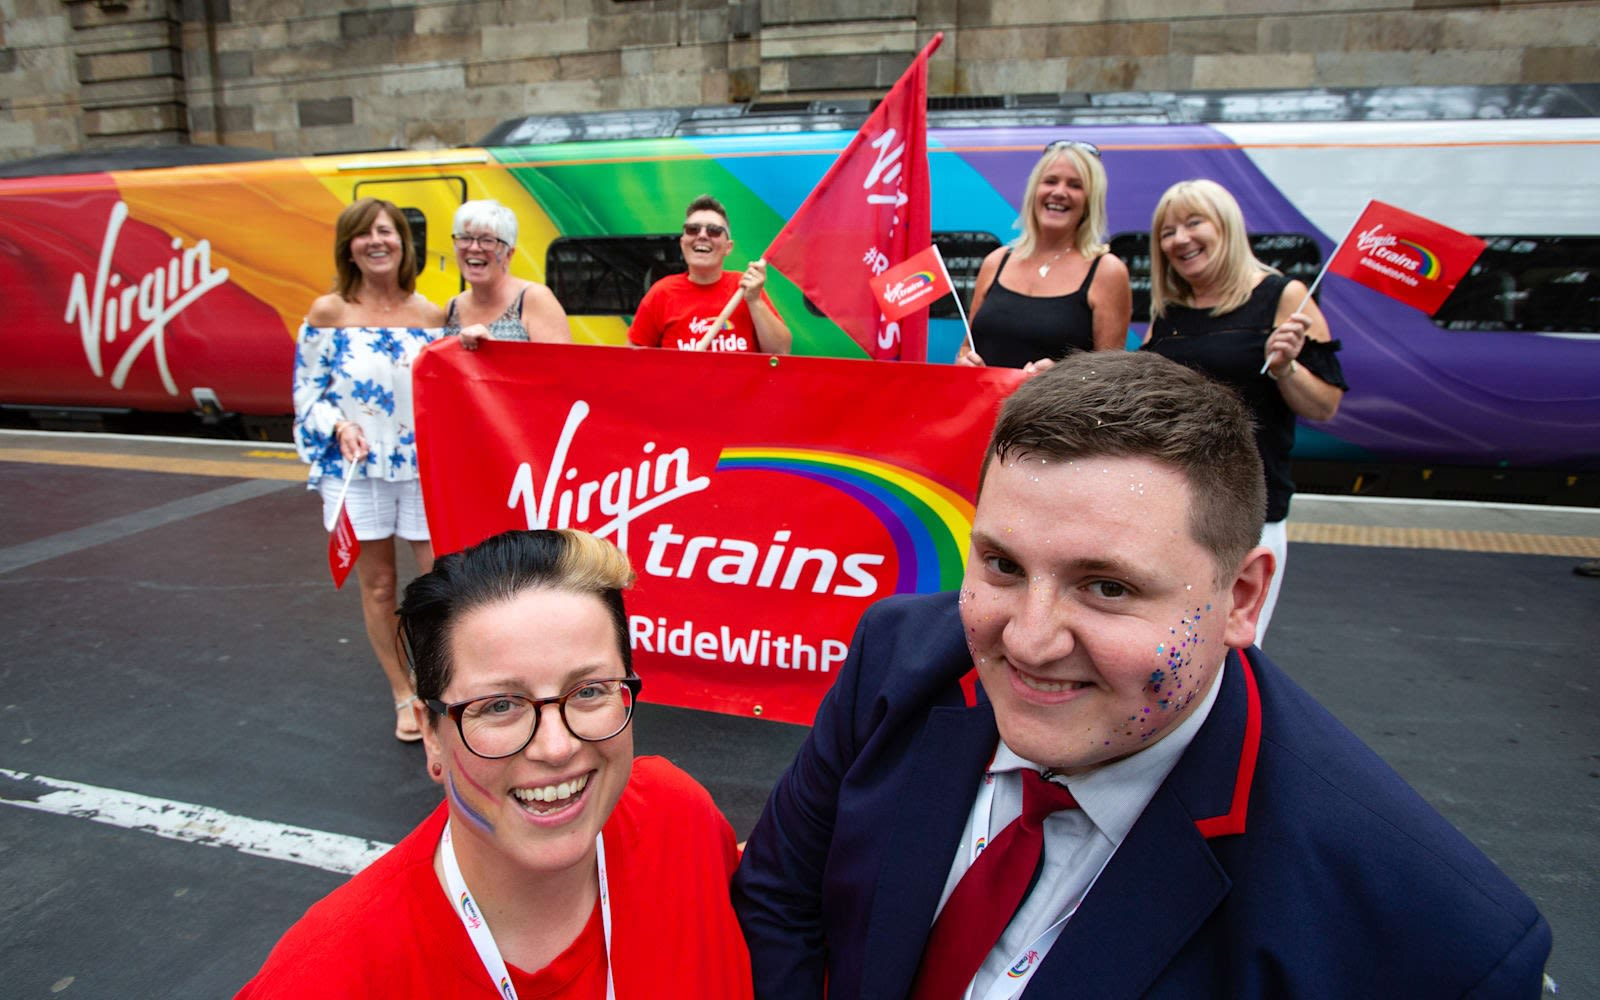 Vic Whitehouse with her team at Virgin Trains celebrating Pride